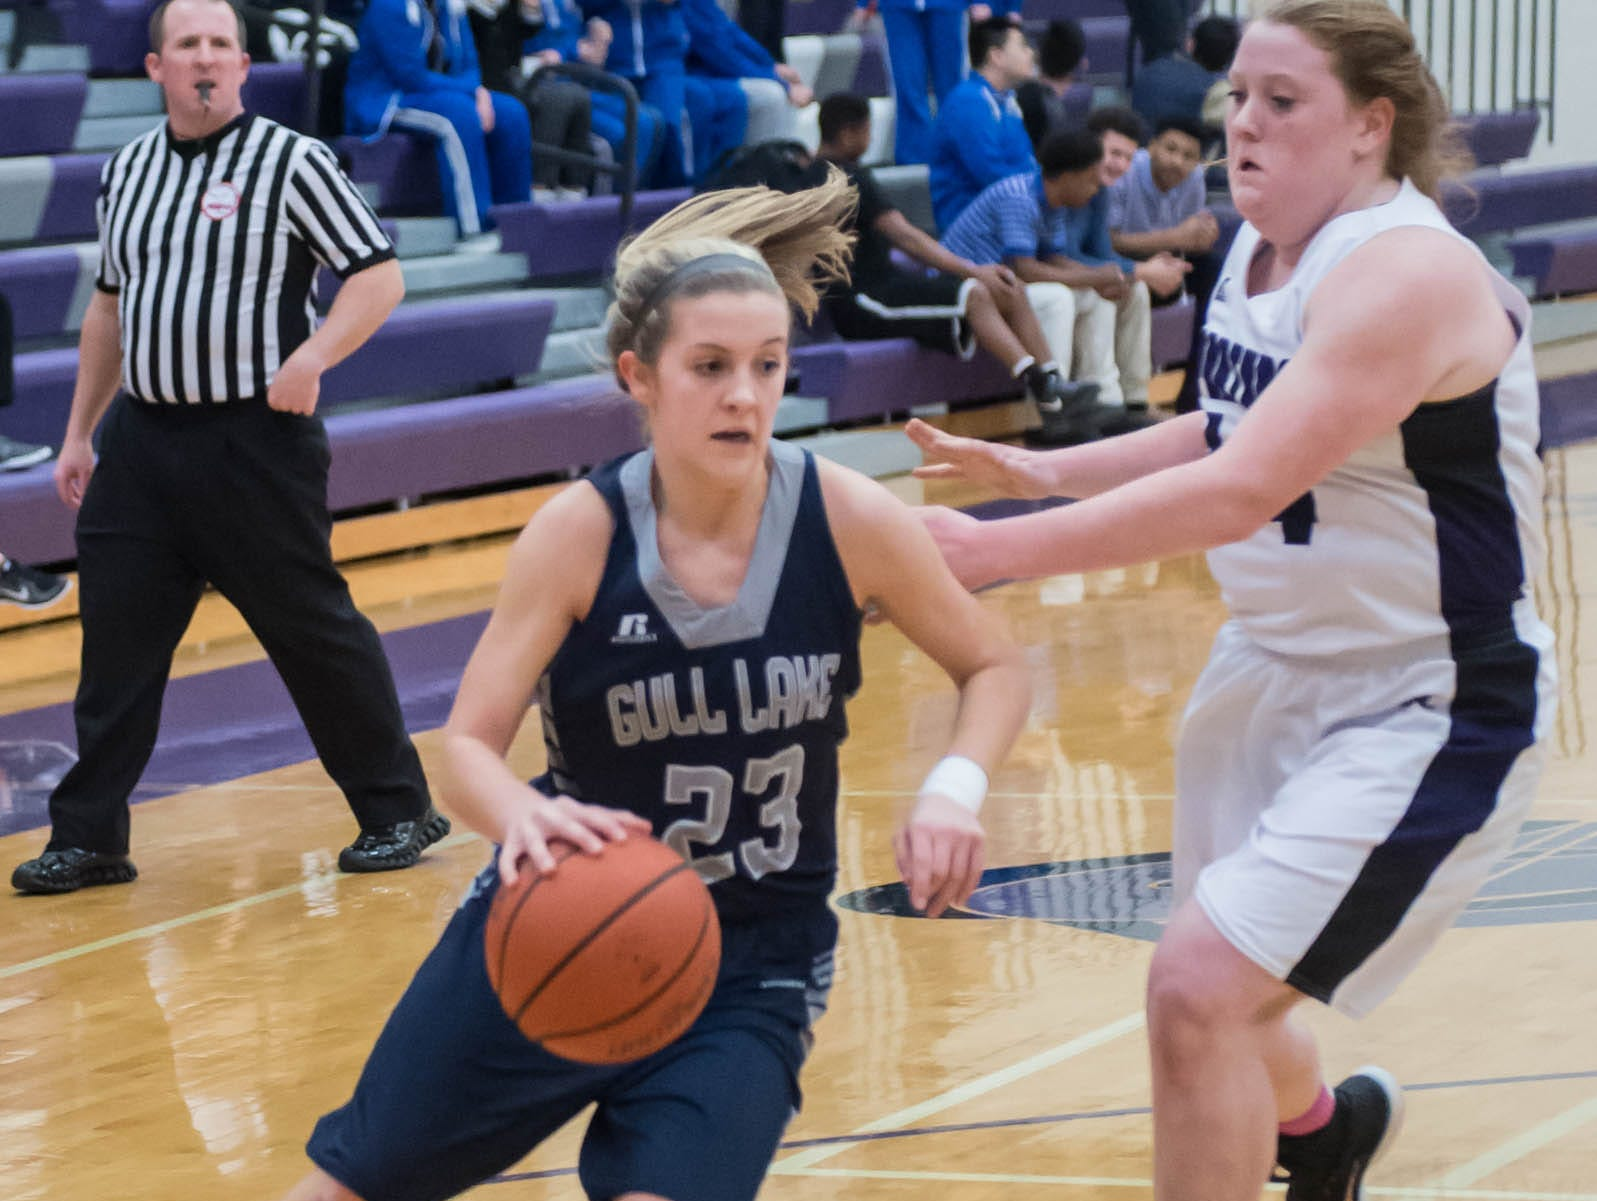 Gull Lakes's Grace Clancy (23) drives to the basket against Lakeview in Friday evening's game.